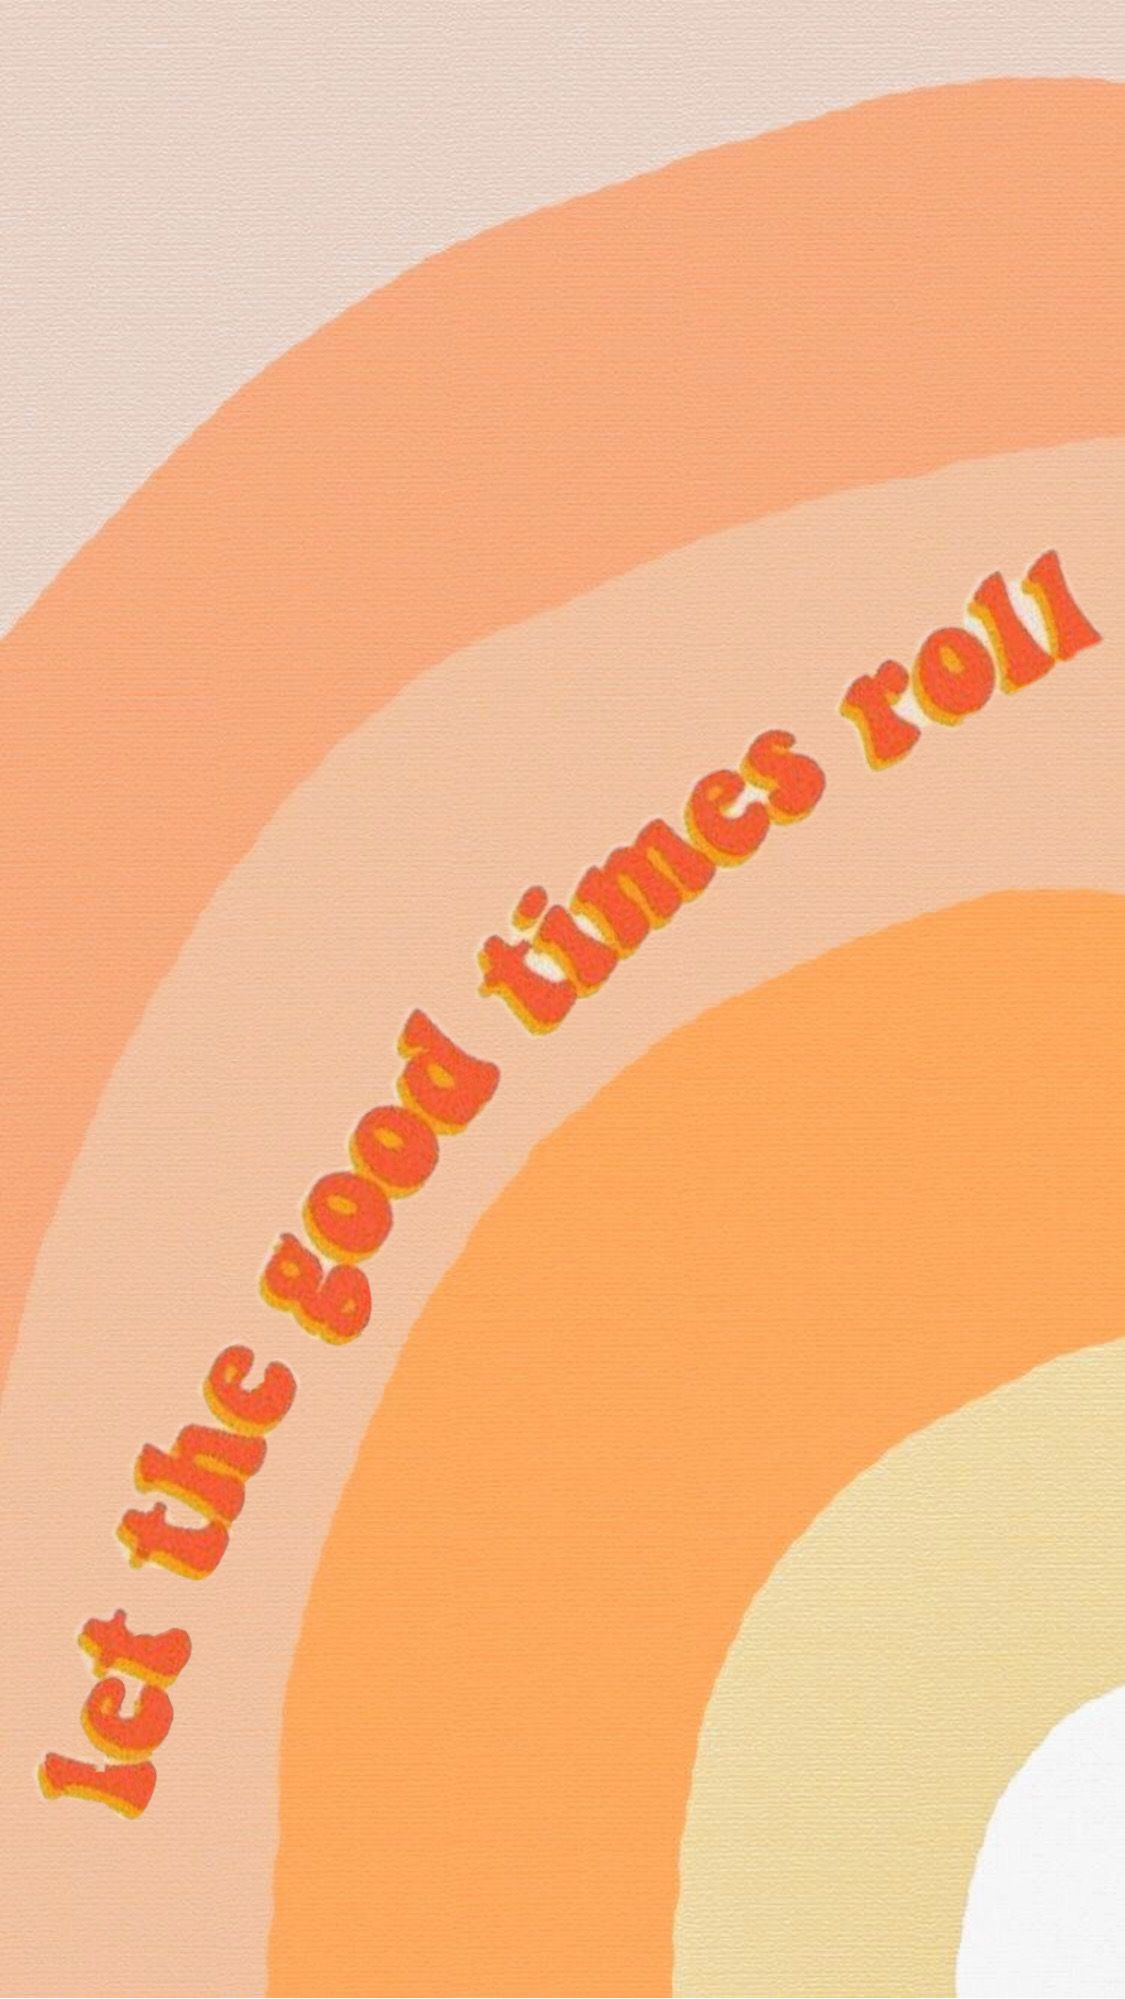 Let The Good Times Roll Vsco Wallpaper In 2020 Art Collage Wall Picture Collage Wall Cute Patterns Wallpaper